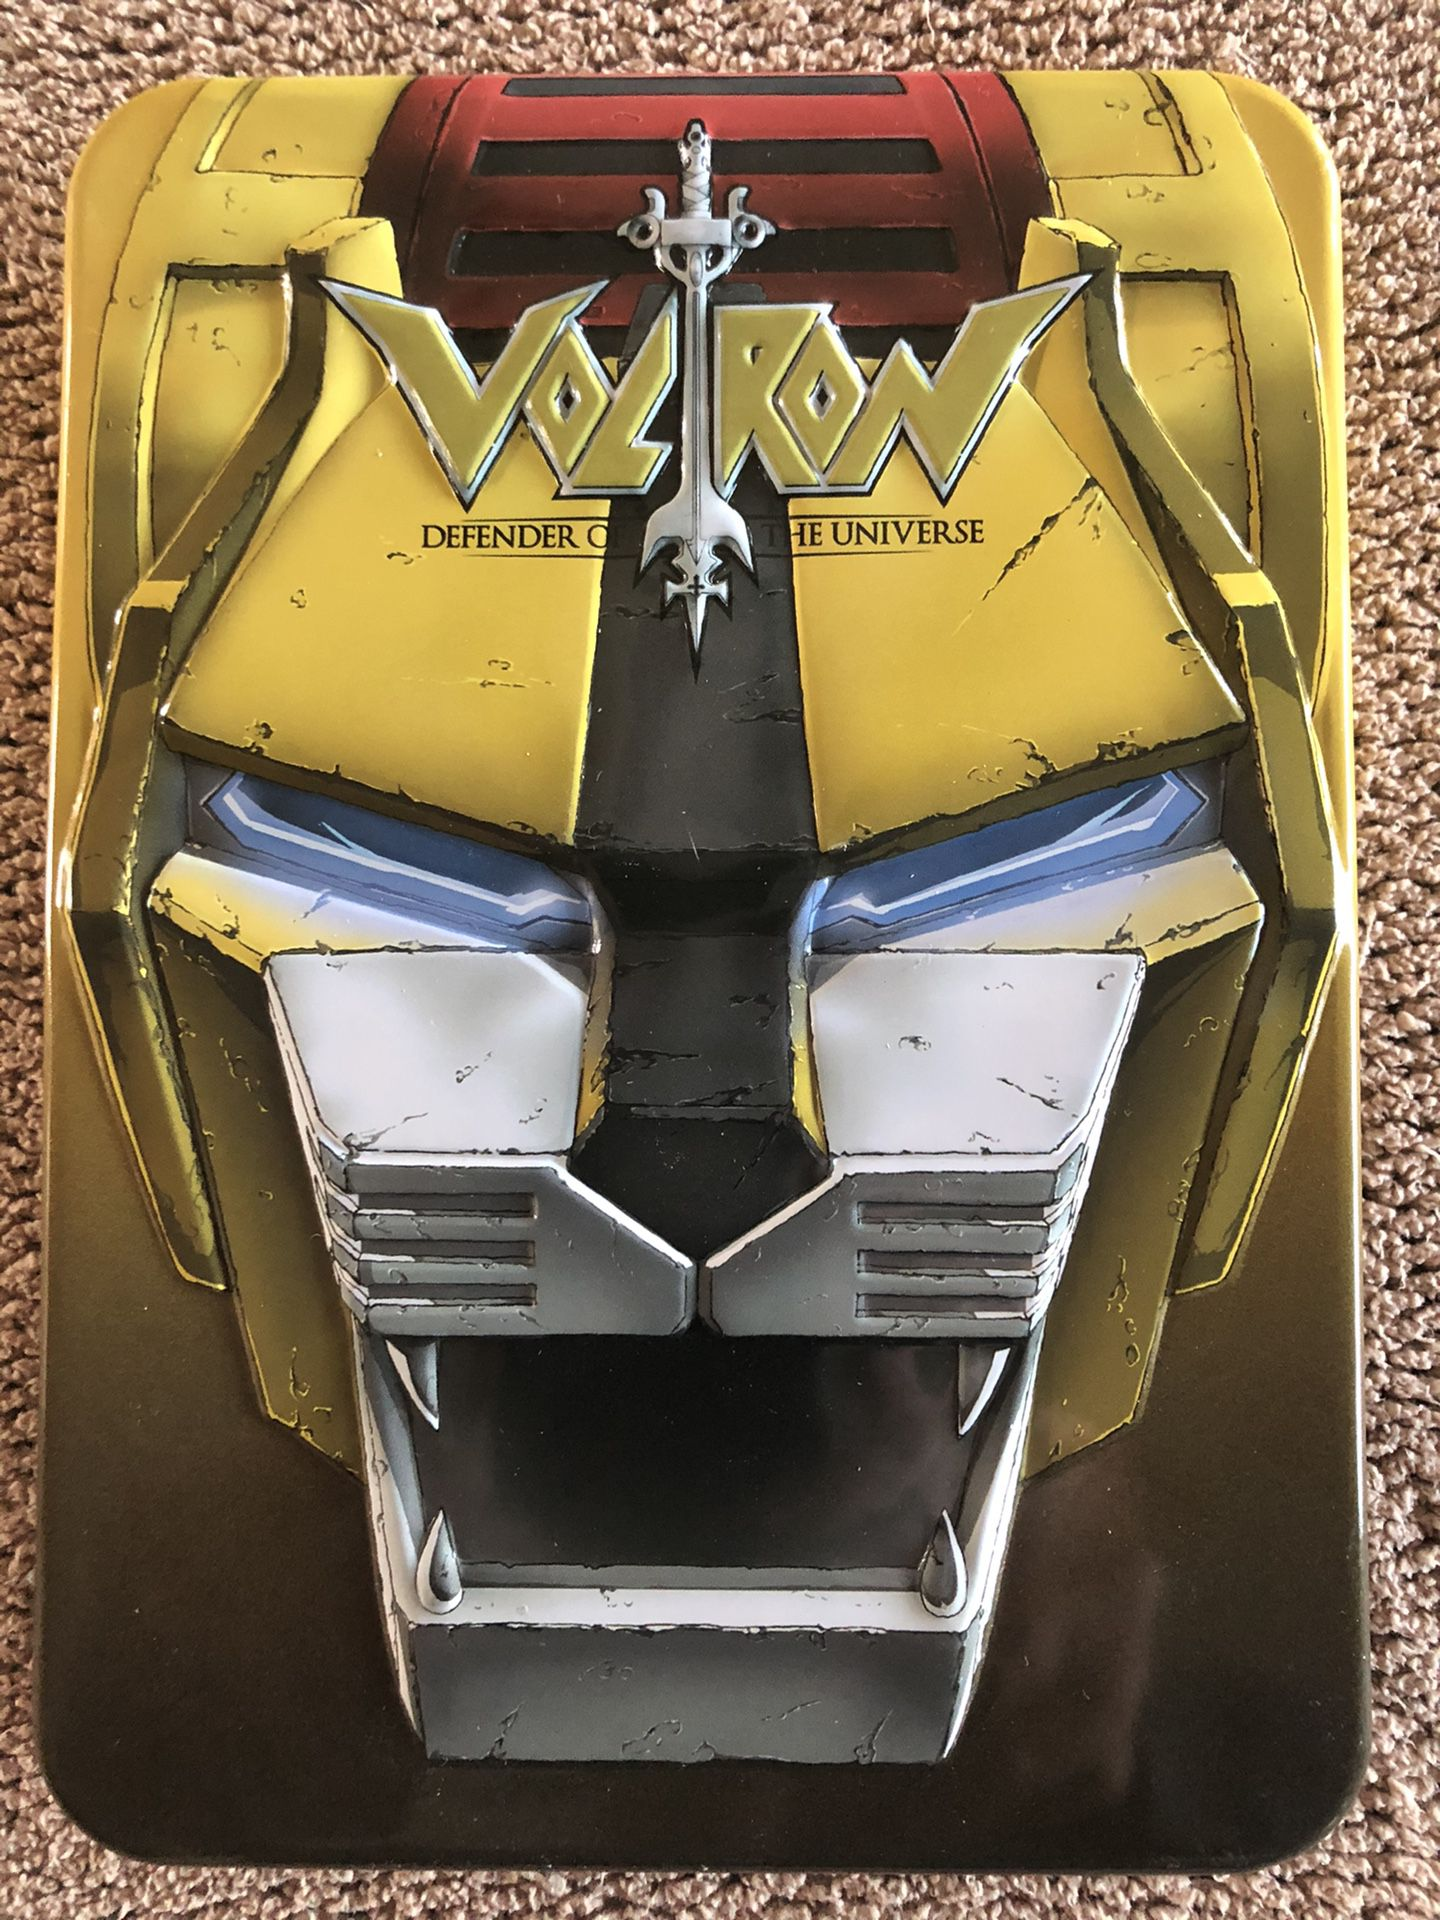 New never played voltron yellow edition dvds in rare collectible tin